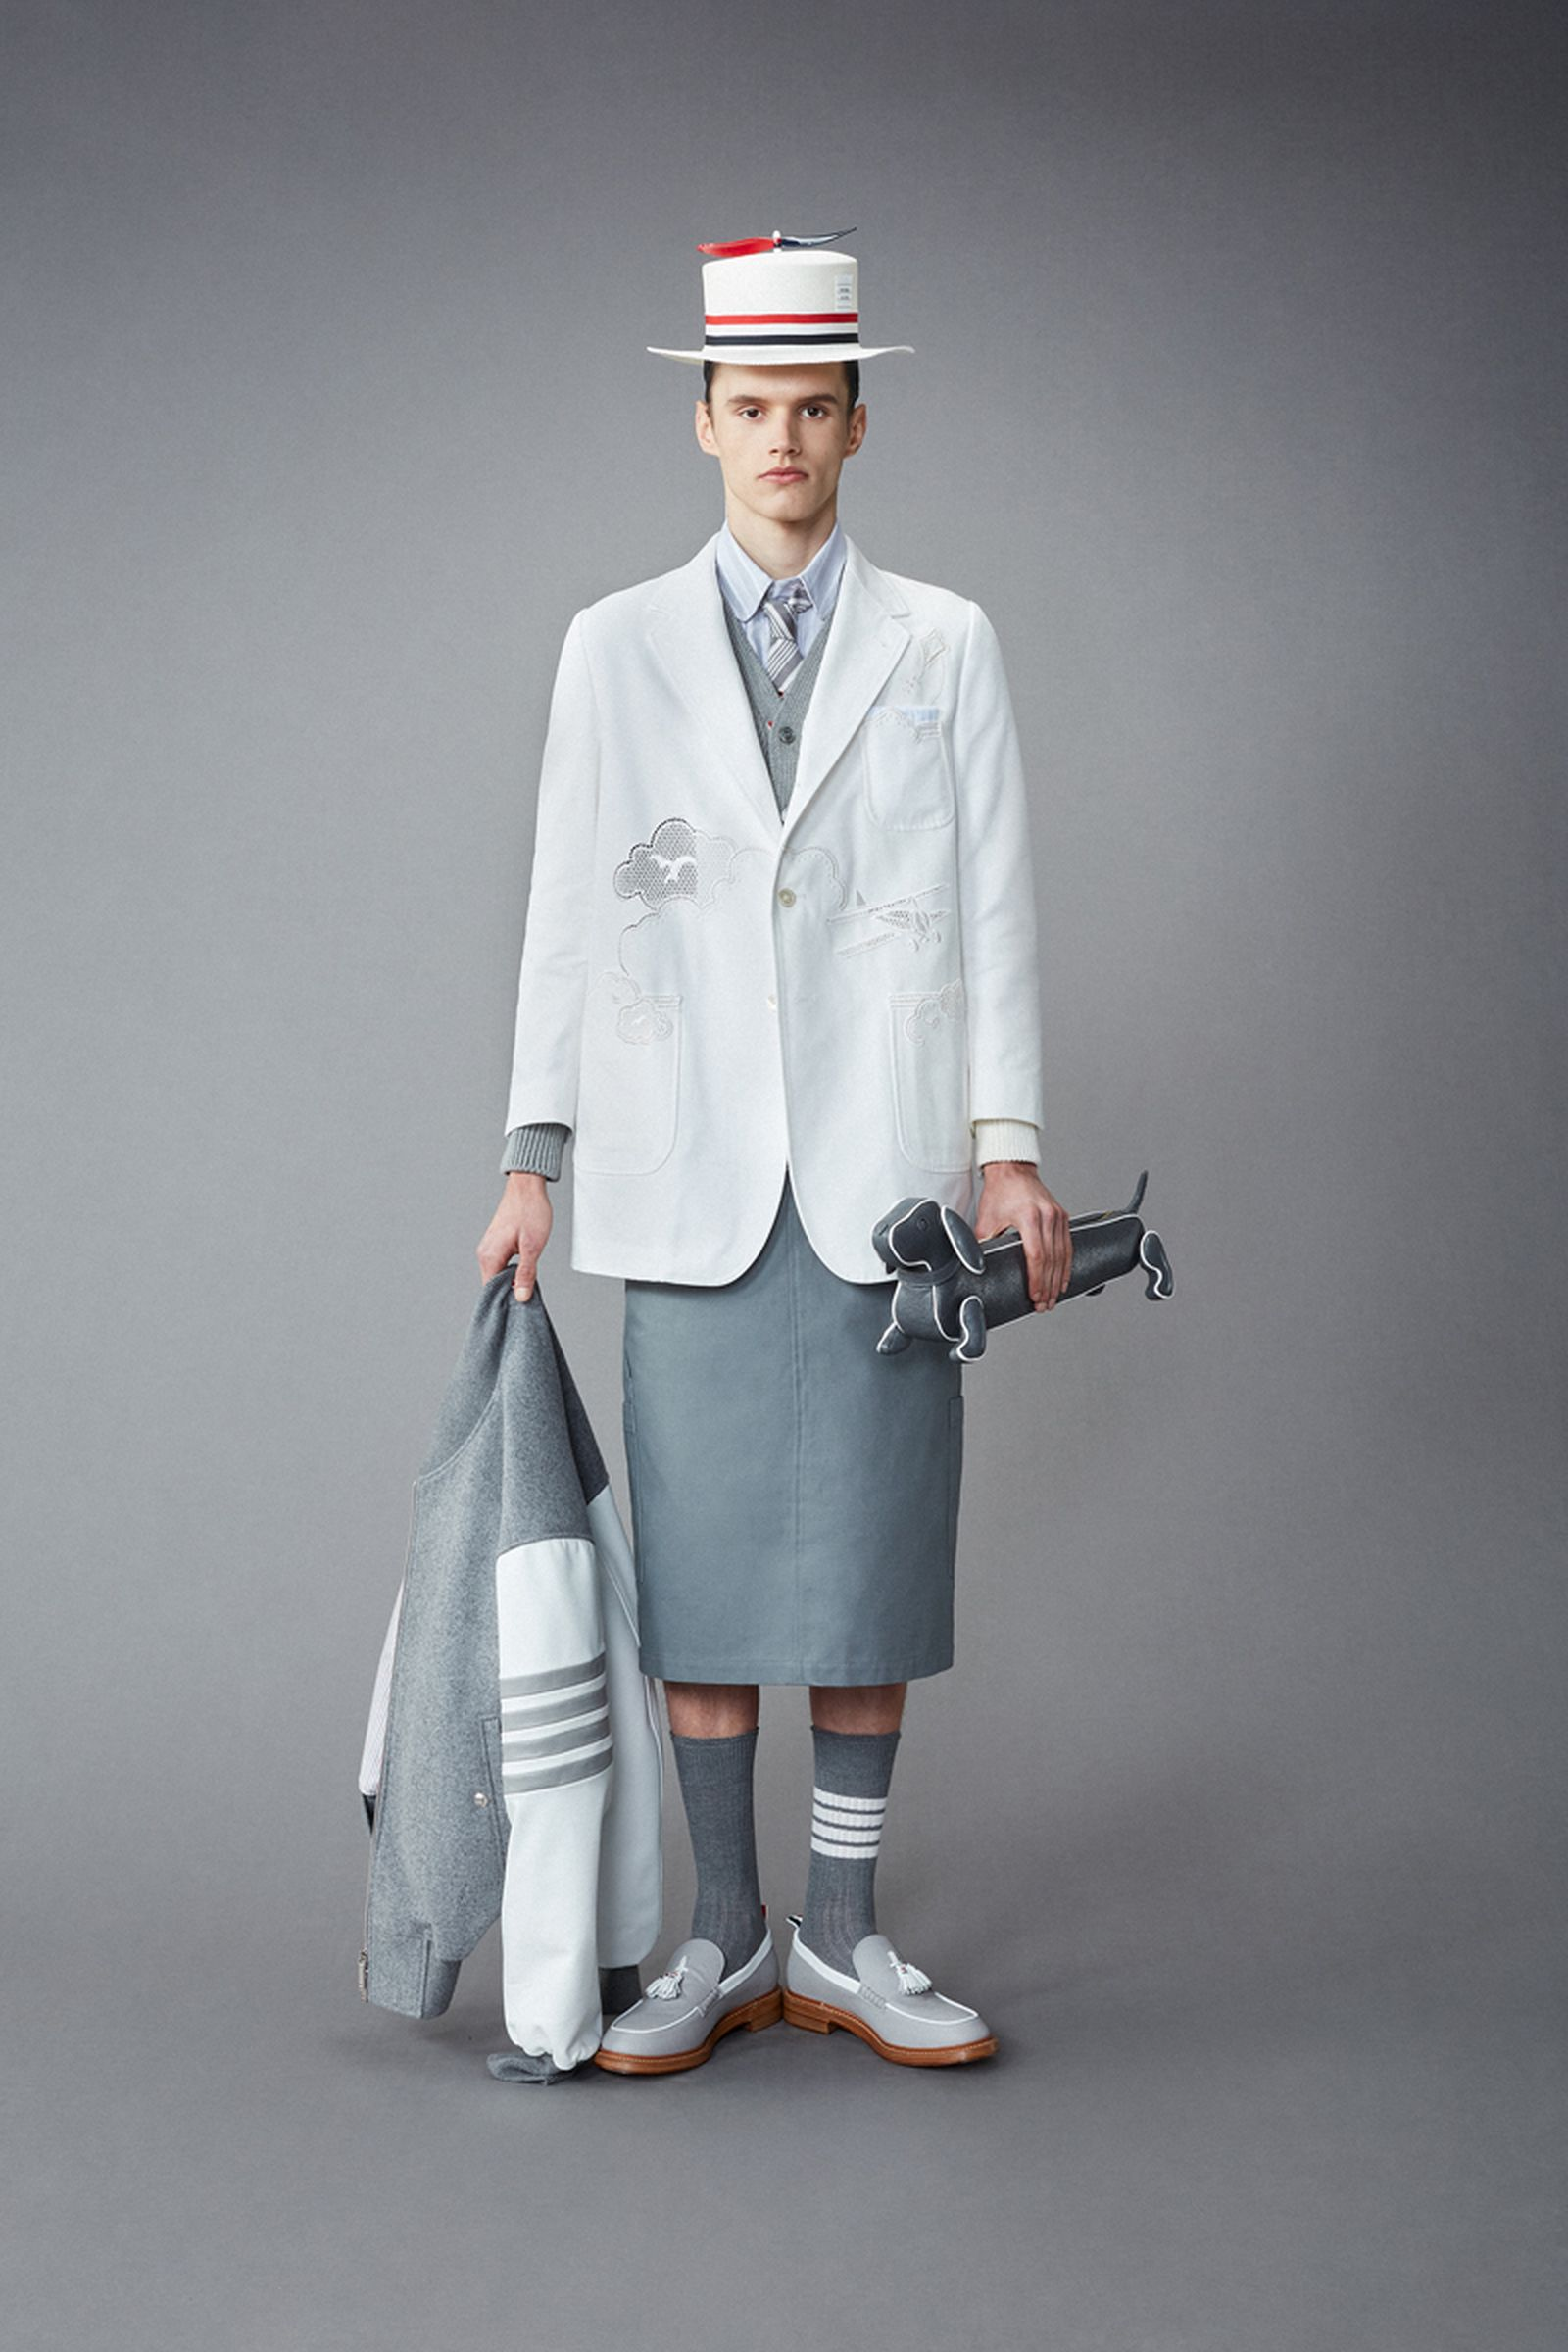 thom-browne-resort-2022-collection- (7)